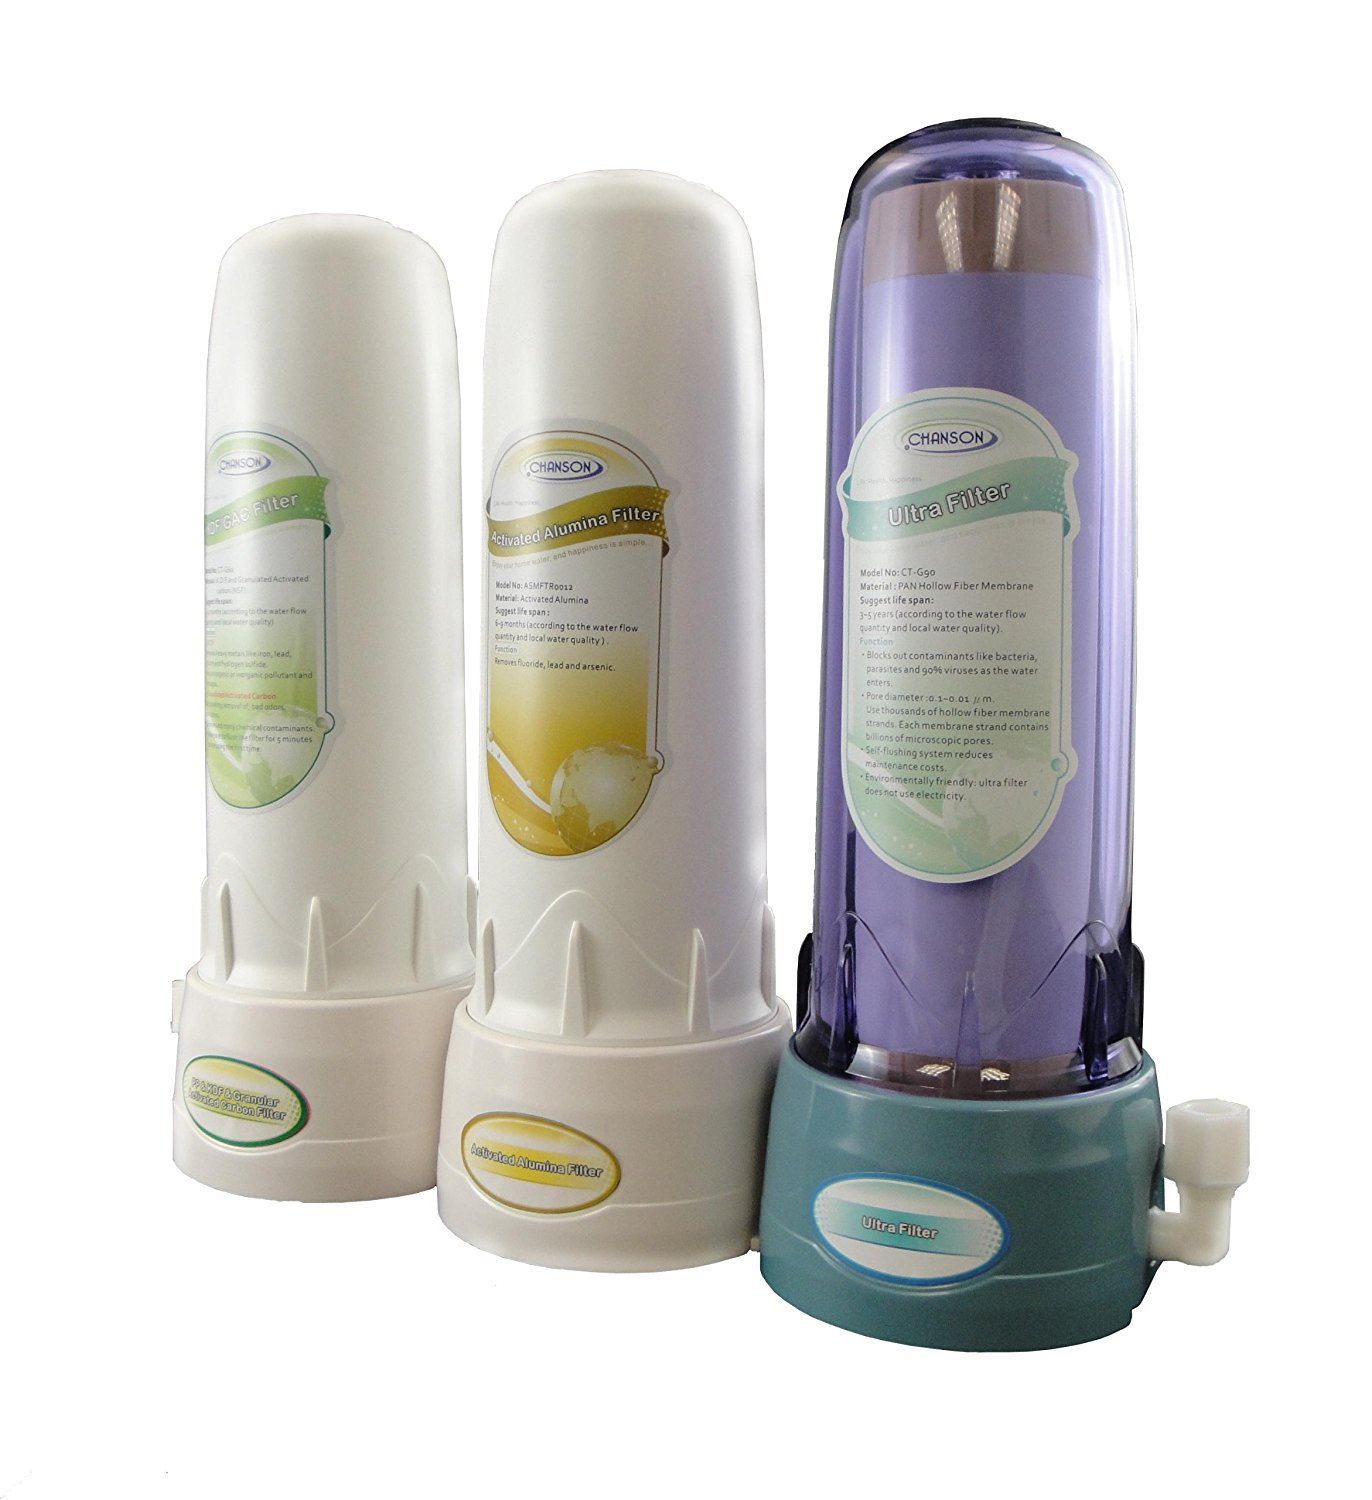 C3 City Water Filtration System for Counter-Top Ionizers